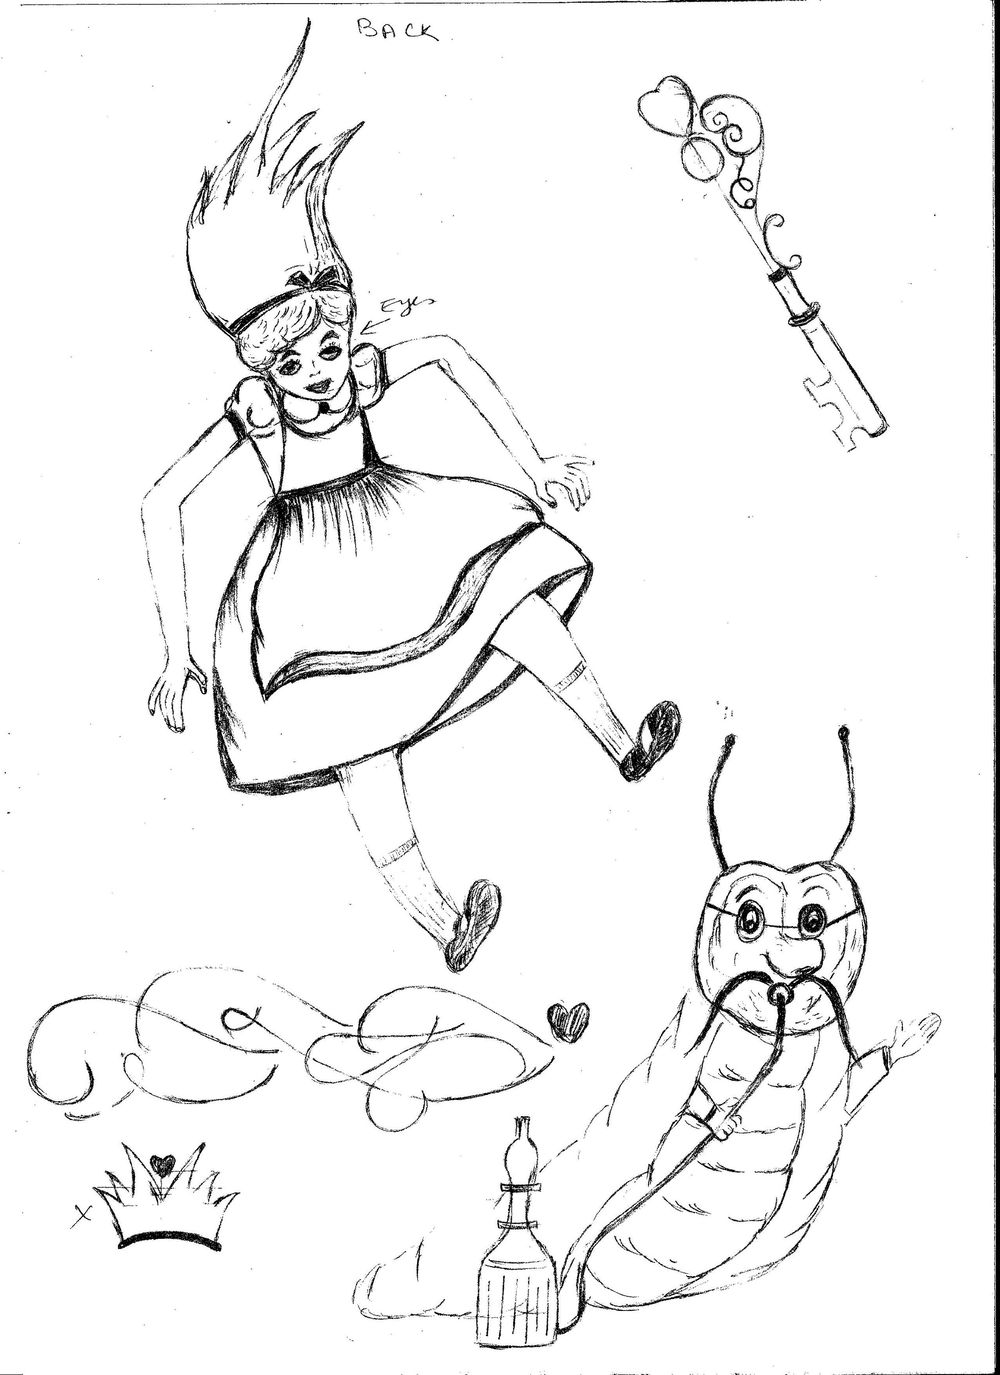 ALICE IN WONDERLAND BOOK COVER PROJECT UPDATED  - image 1 - student project